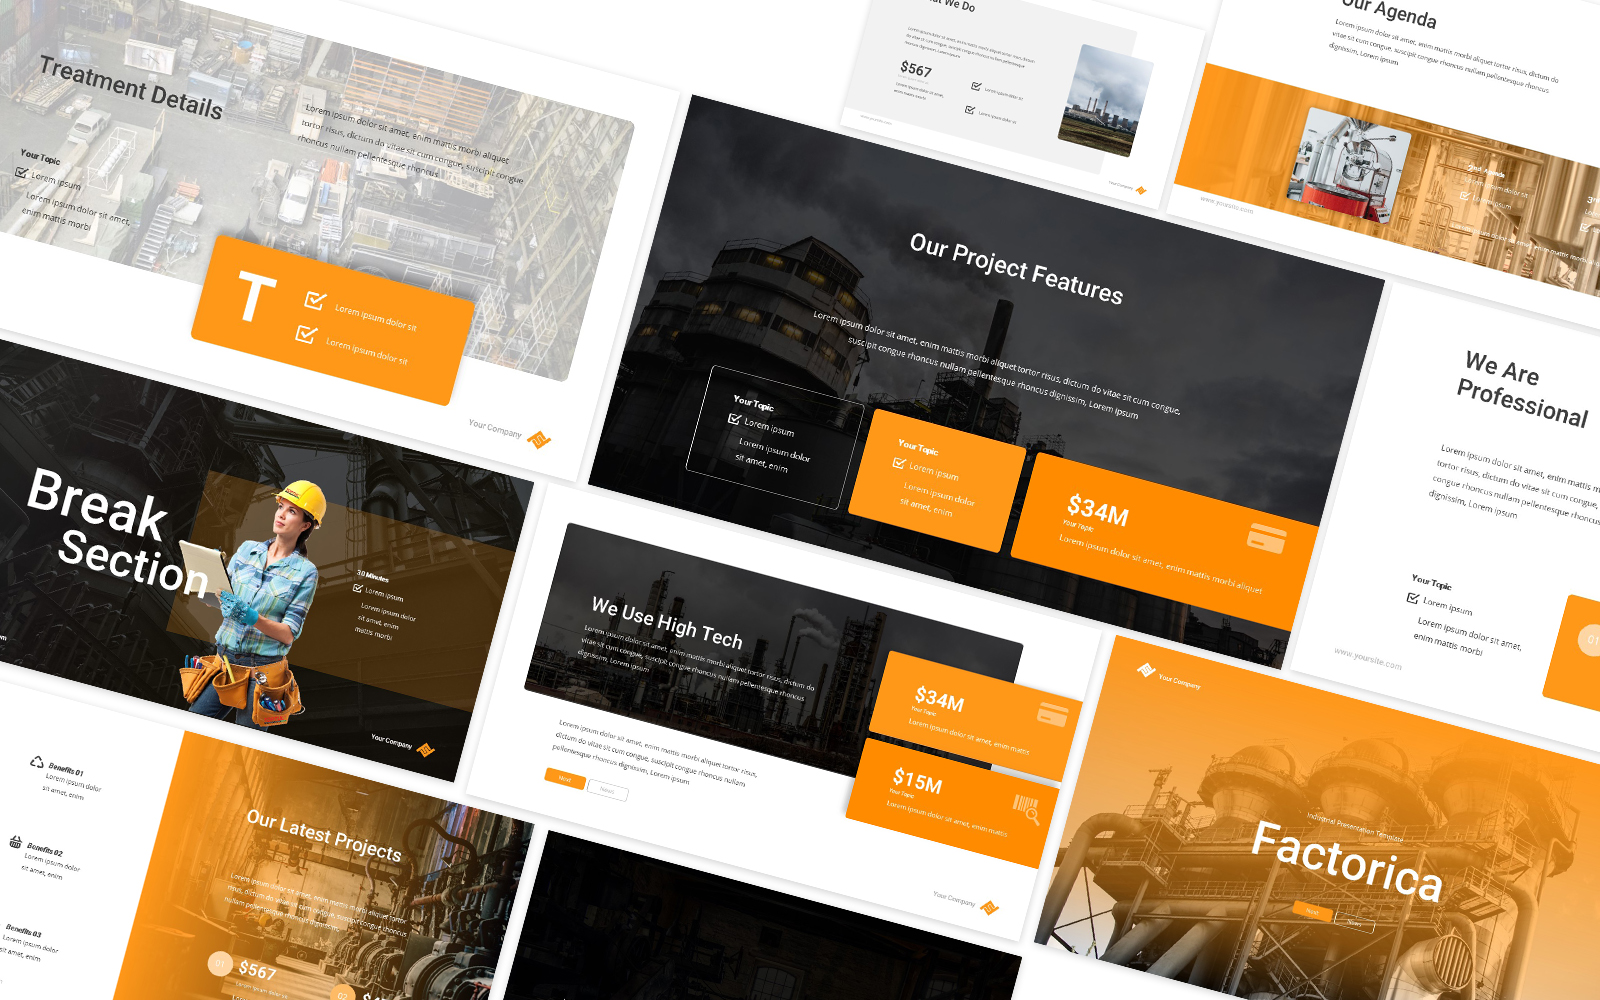 Factorica Factory Industrial Powerpoint Template